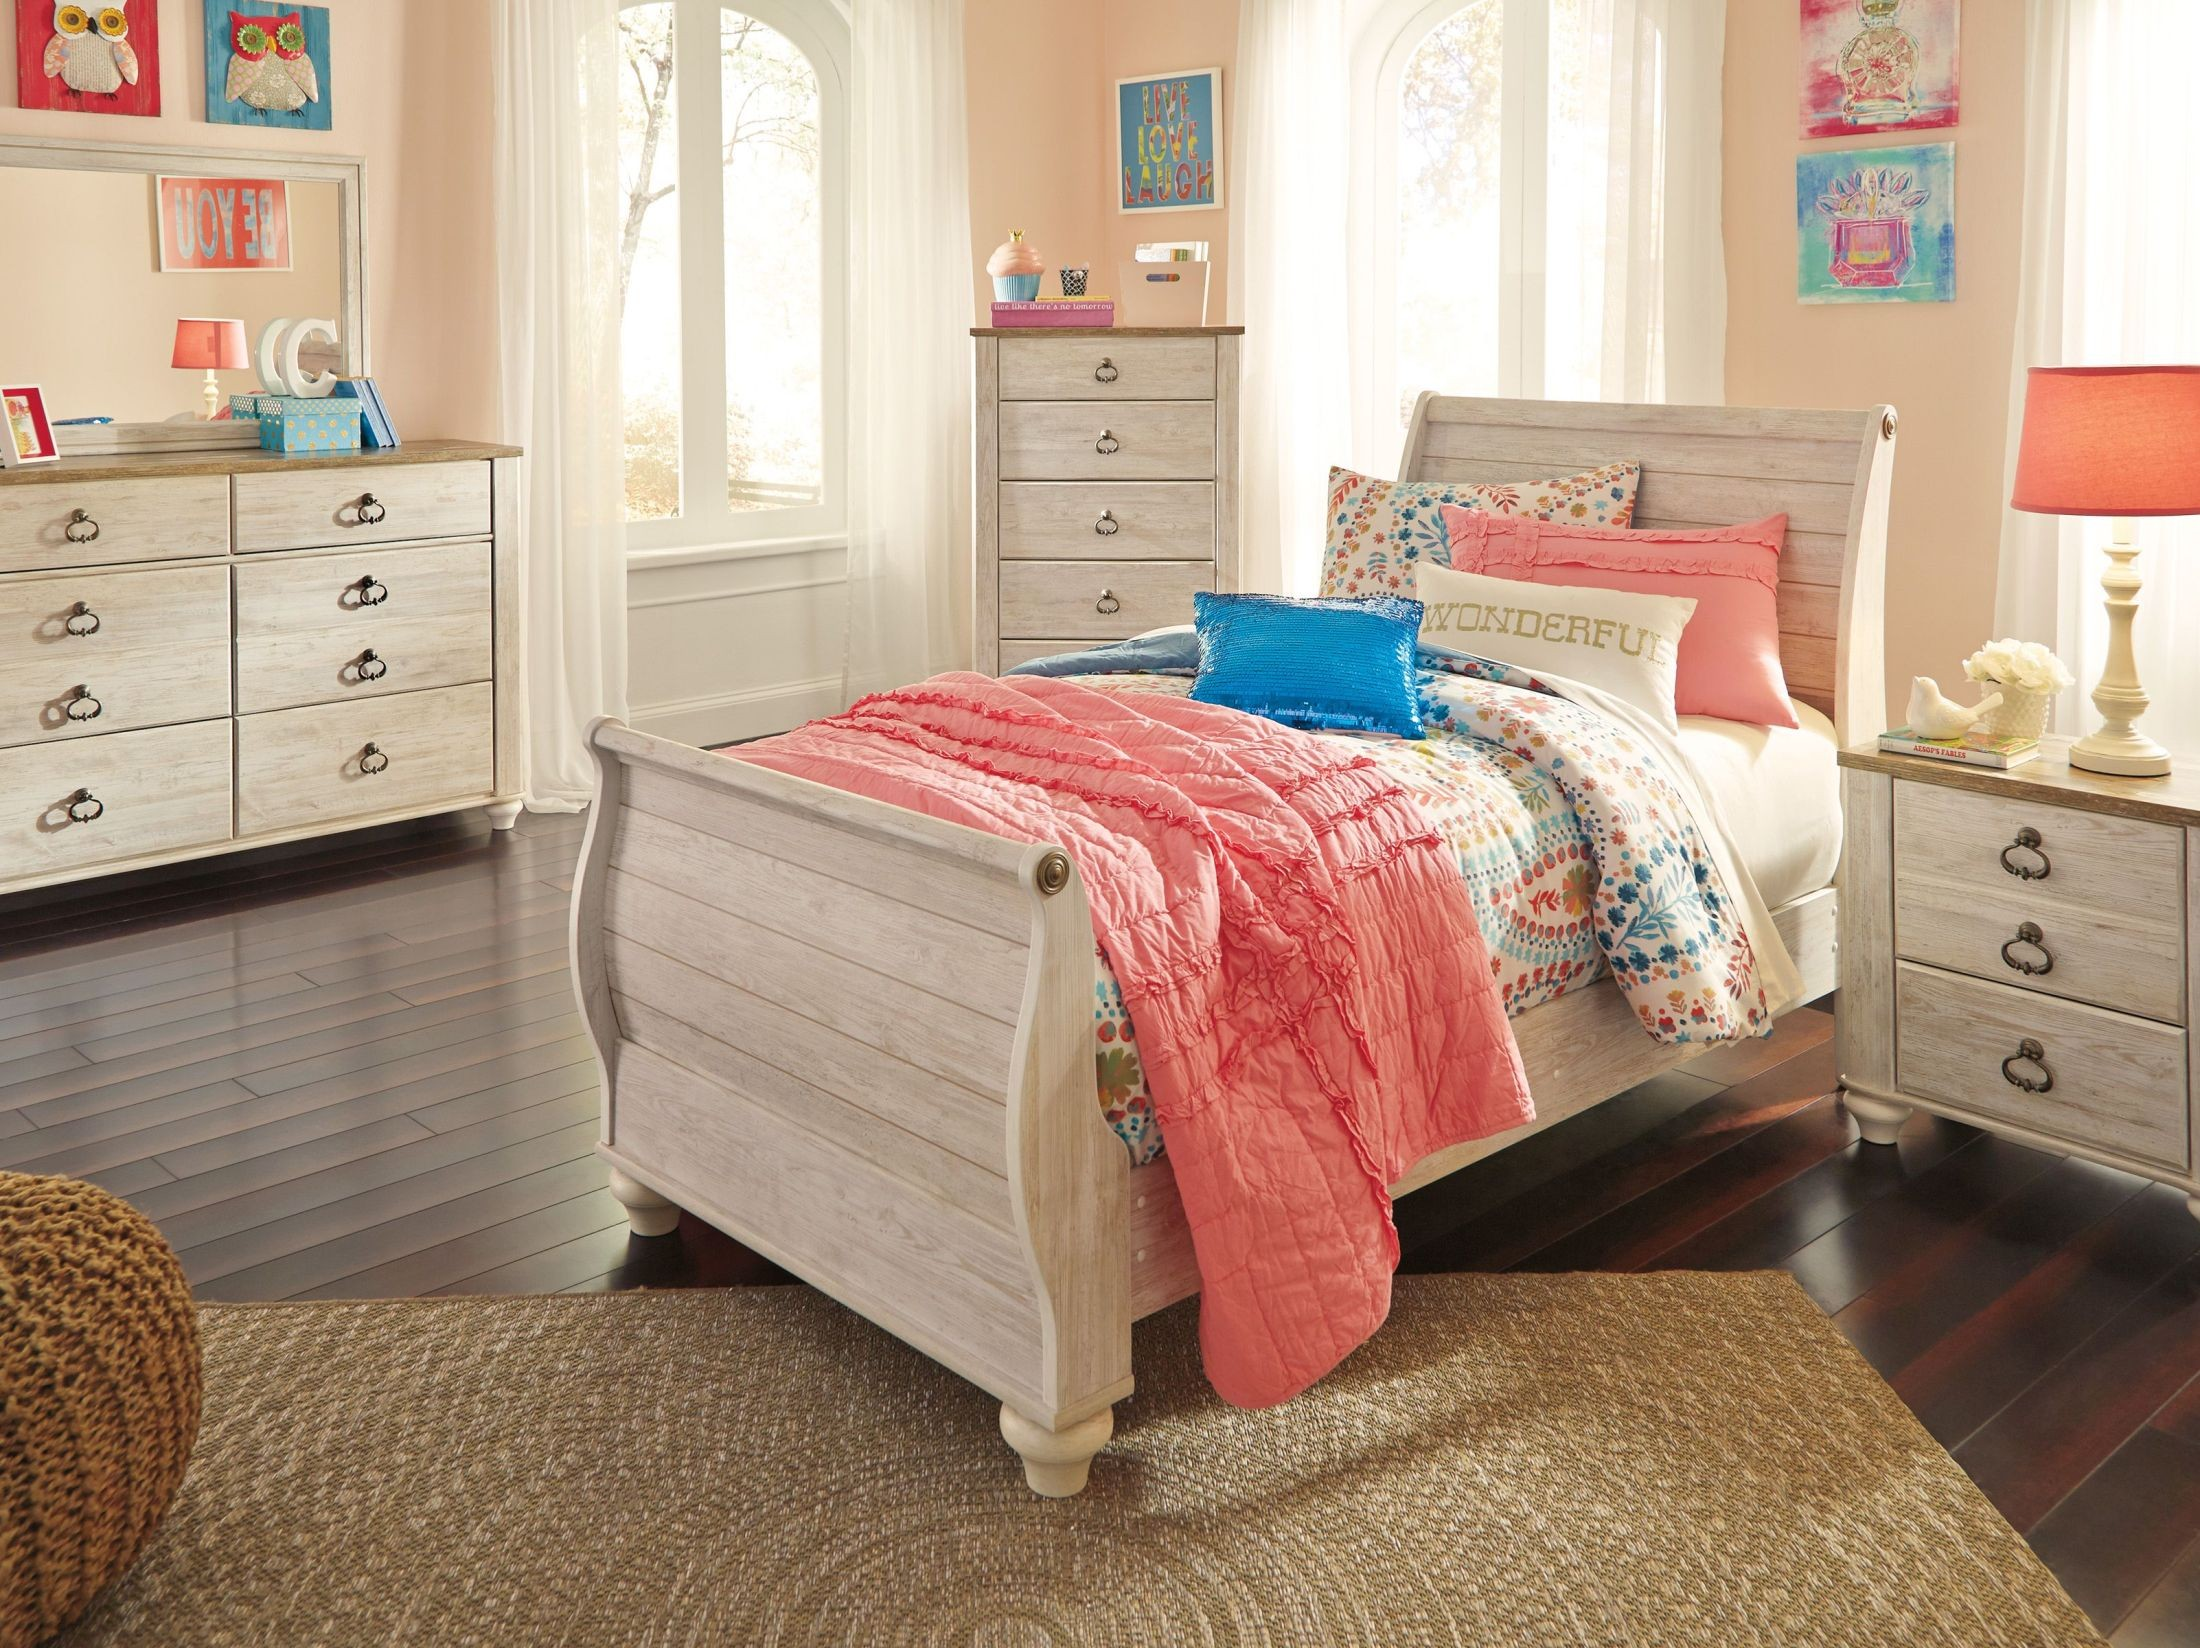 willowton whitewash sleigh bedroom set b267 63 52 82 ashley furniture deals millington tn willowton whitewash queen